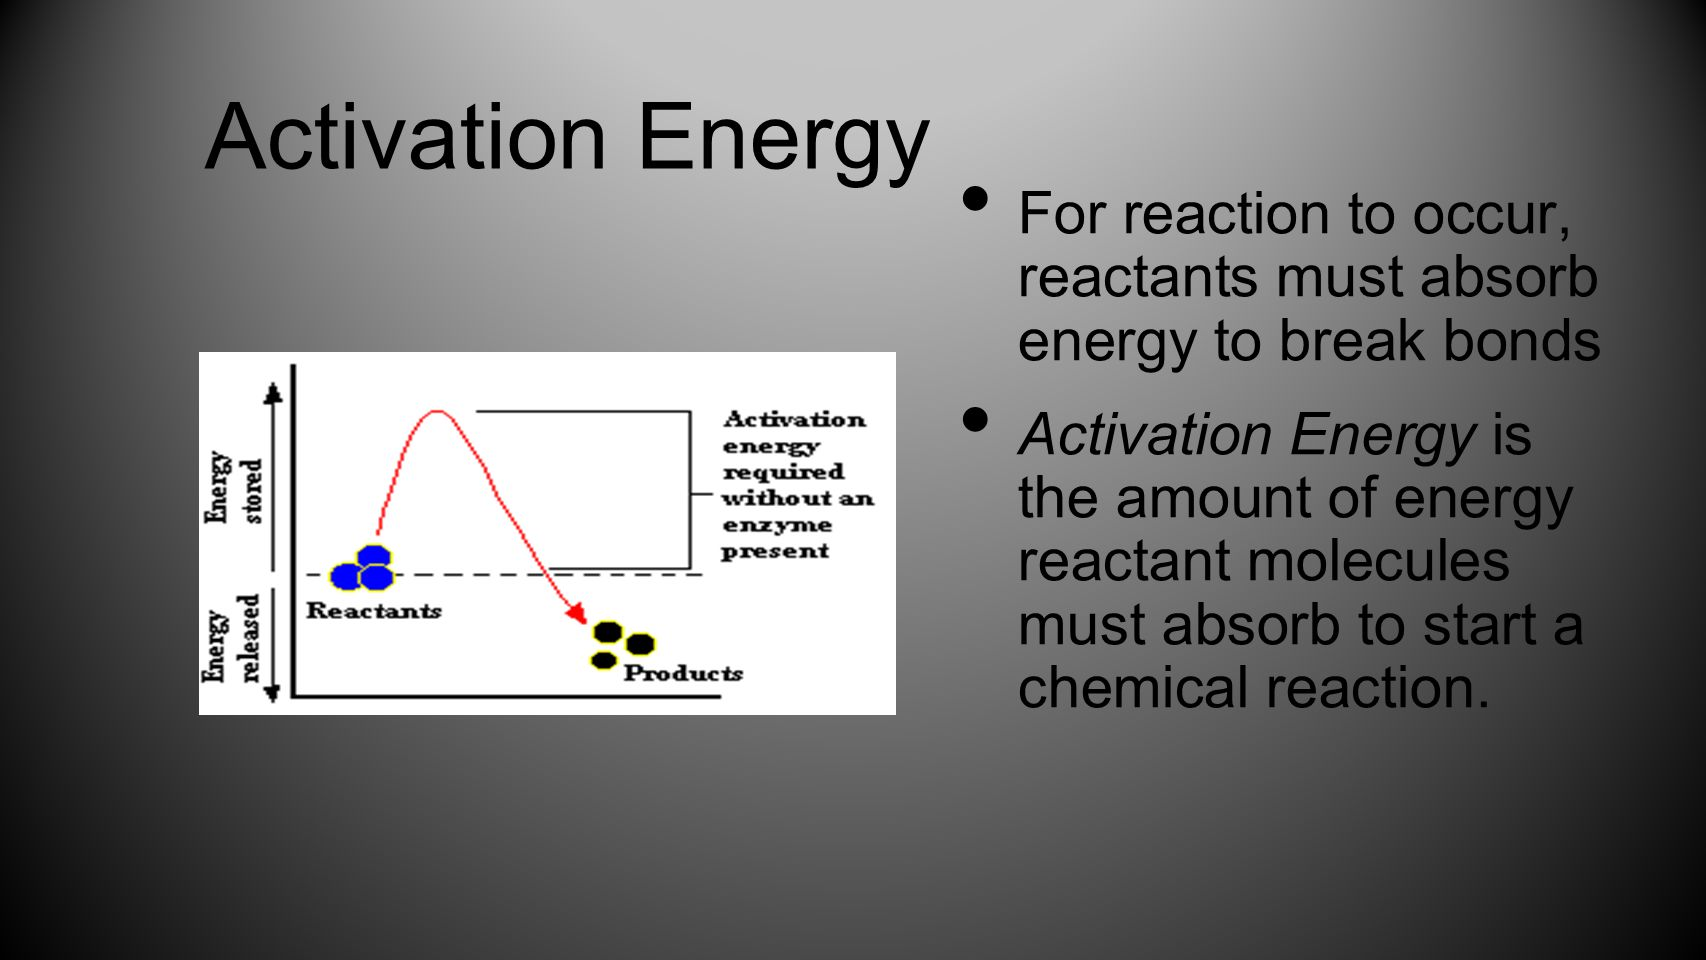 Activation Energy For reaction to occur, reactants must absorb energy to break bonds Activation Energy is the amount of energy reactant molecules must absorb to start a chemical reaction.